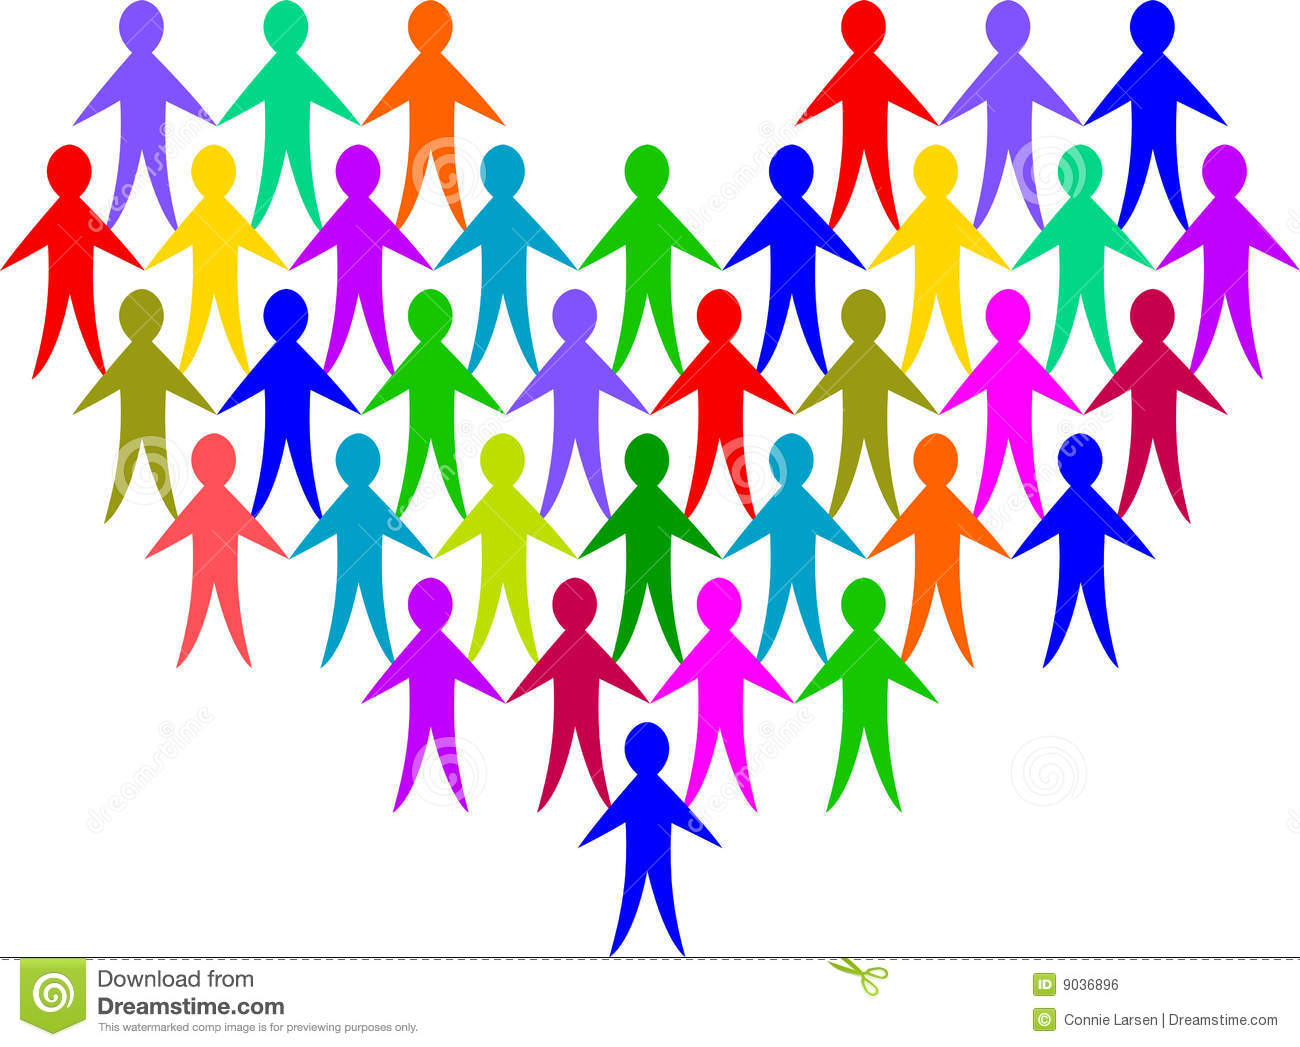 diversity stock illustrations 35 850 diversity stock illustrations rh dreamstime com Diversity Planning Committee Clip Art racial diversity clipart free